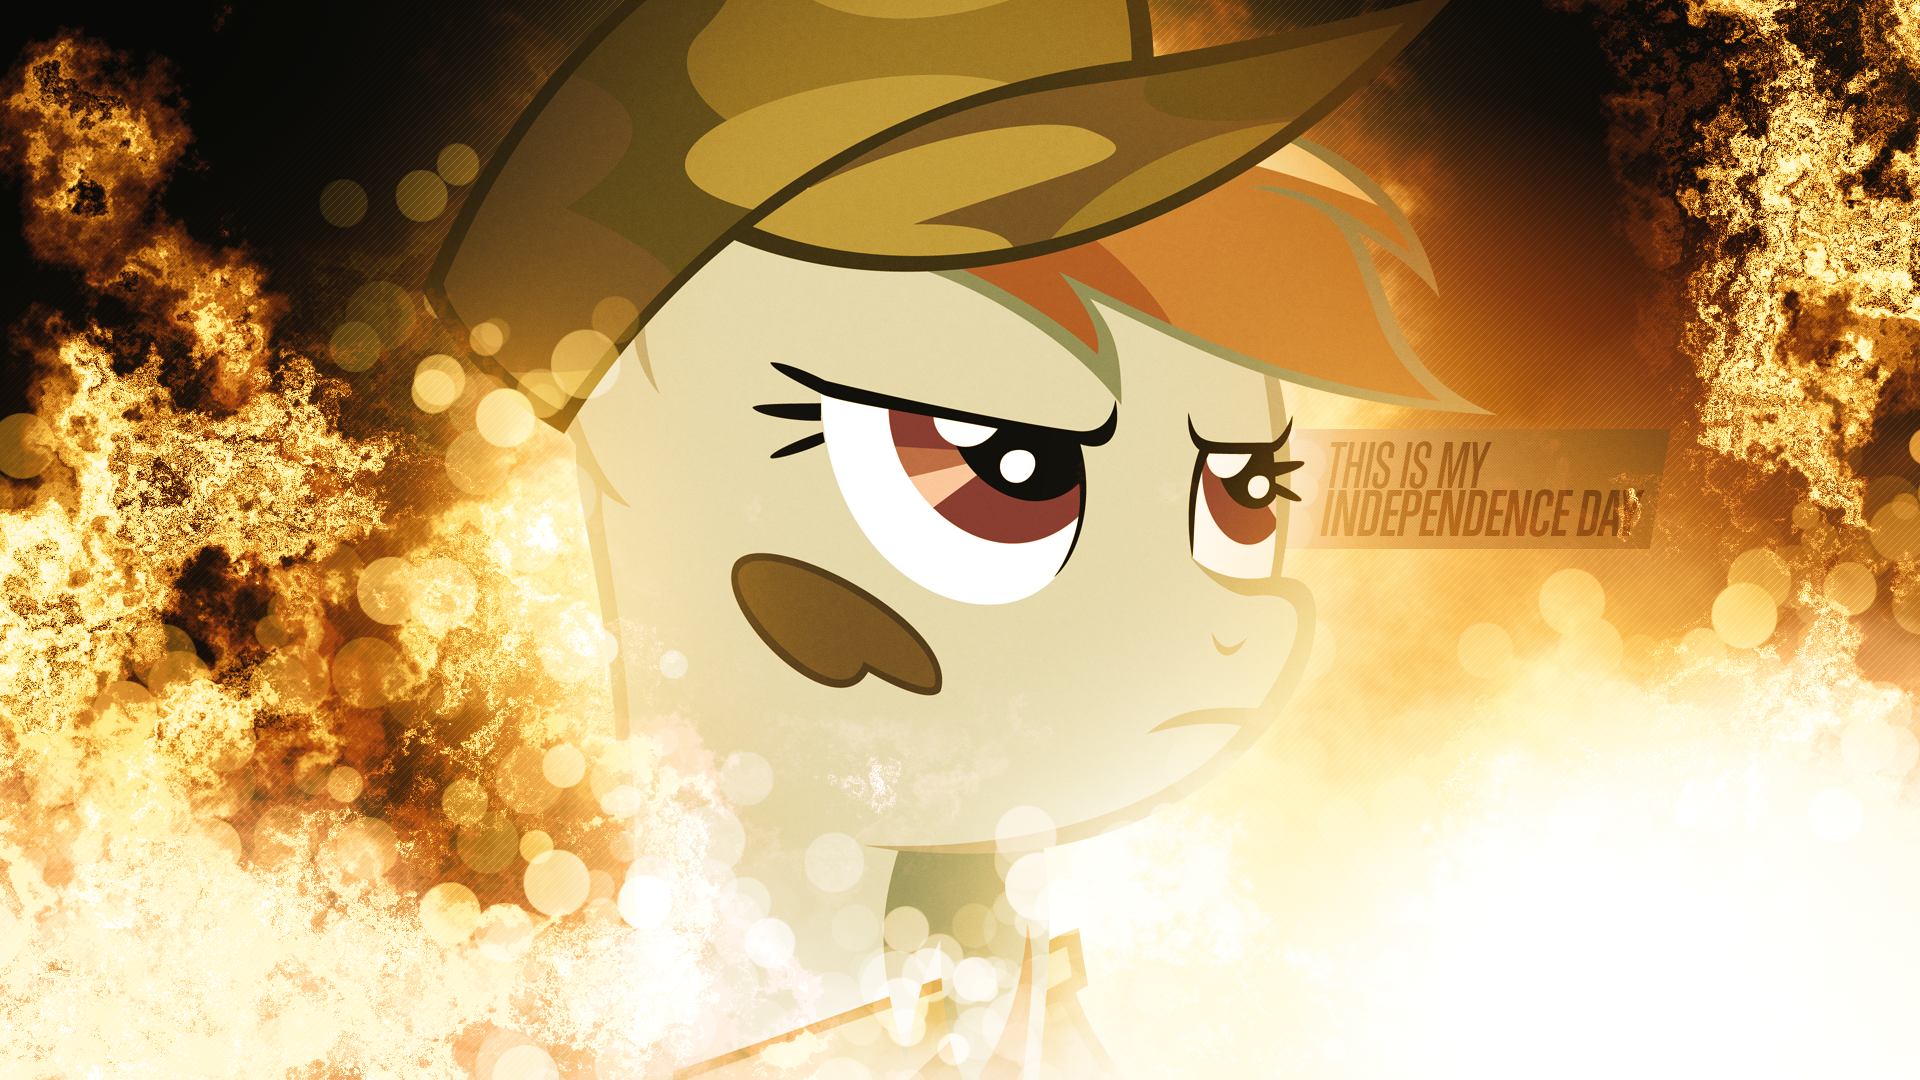 Independence Day  by impala99 and JeffThunderbolt